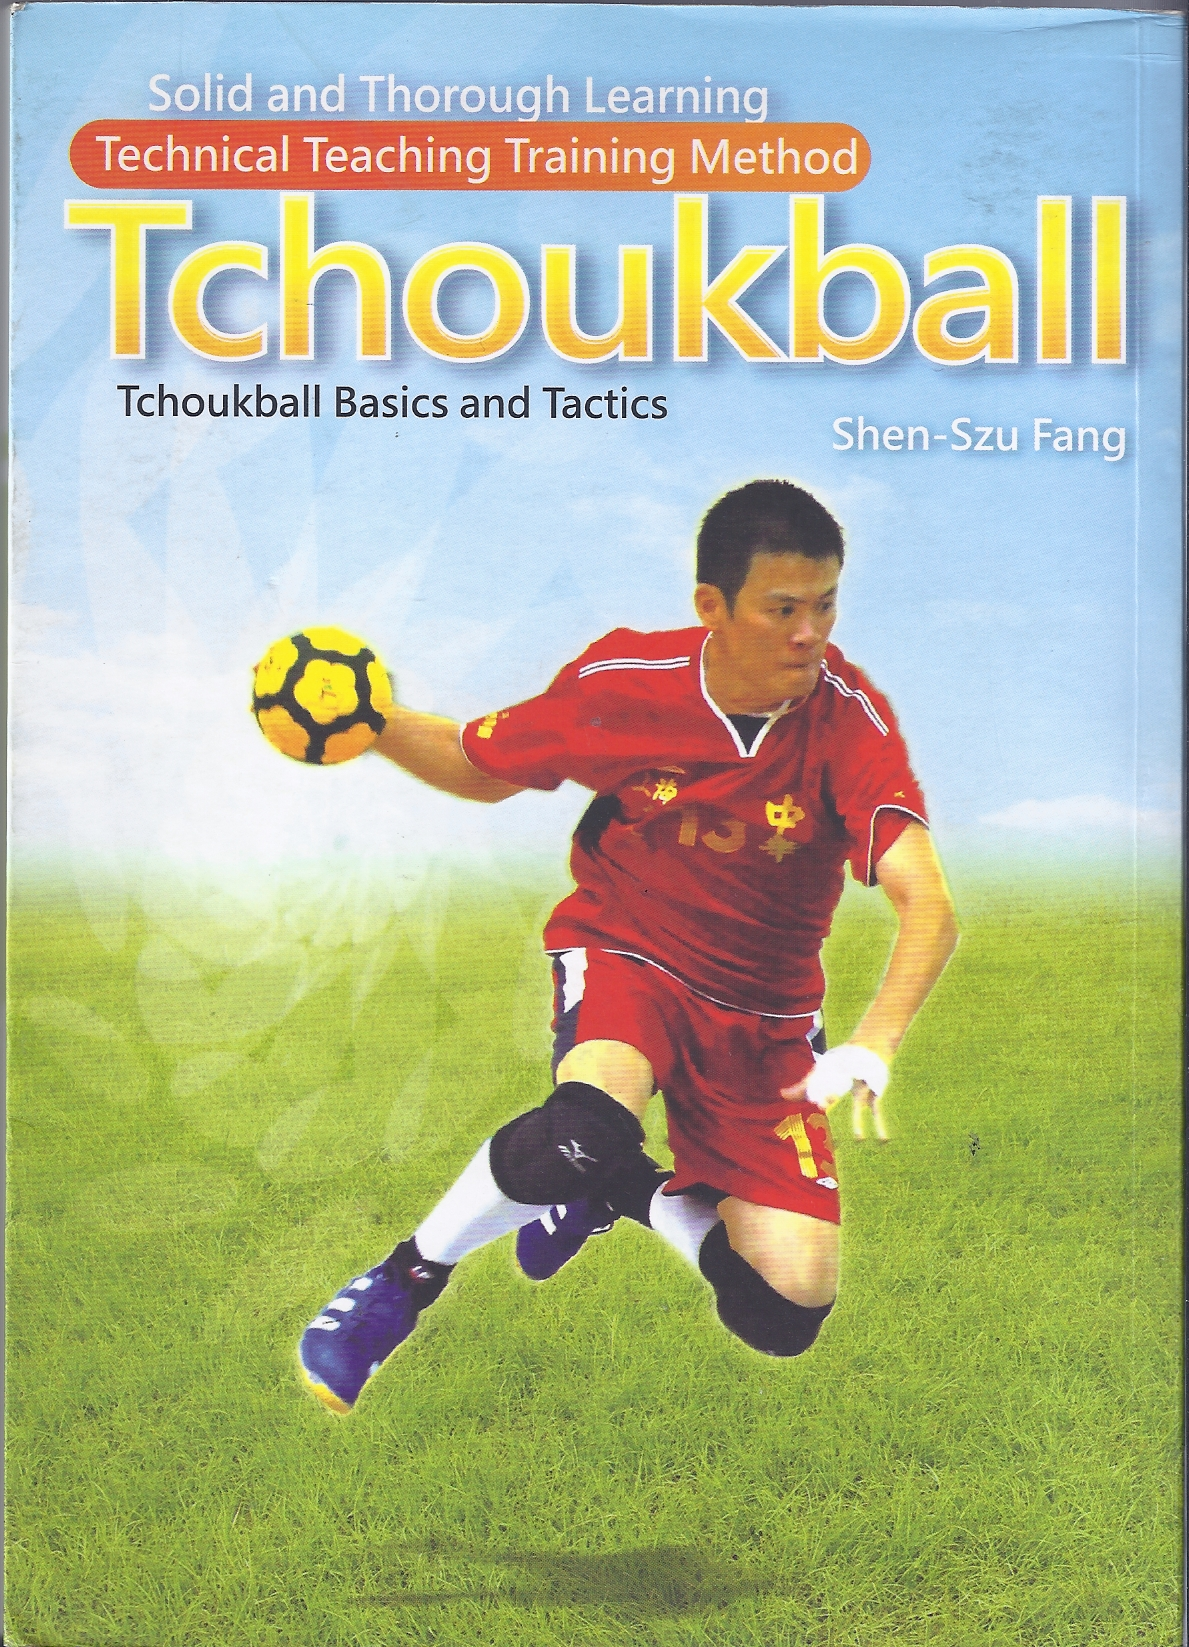 Teaching and Training Tchoukball Techniques